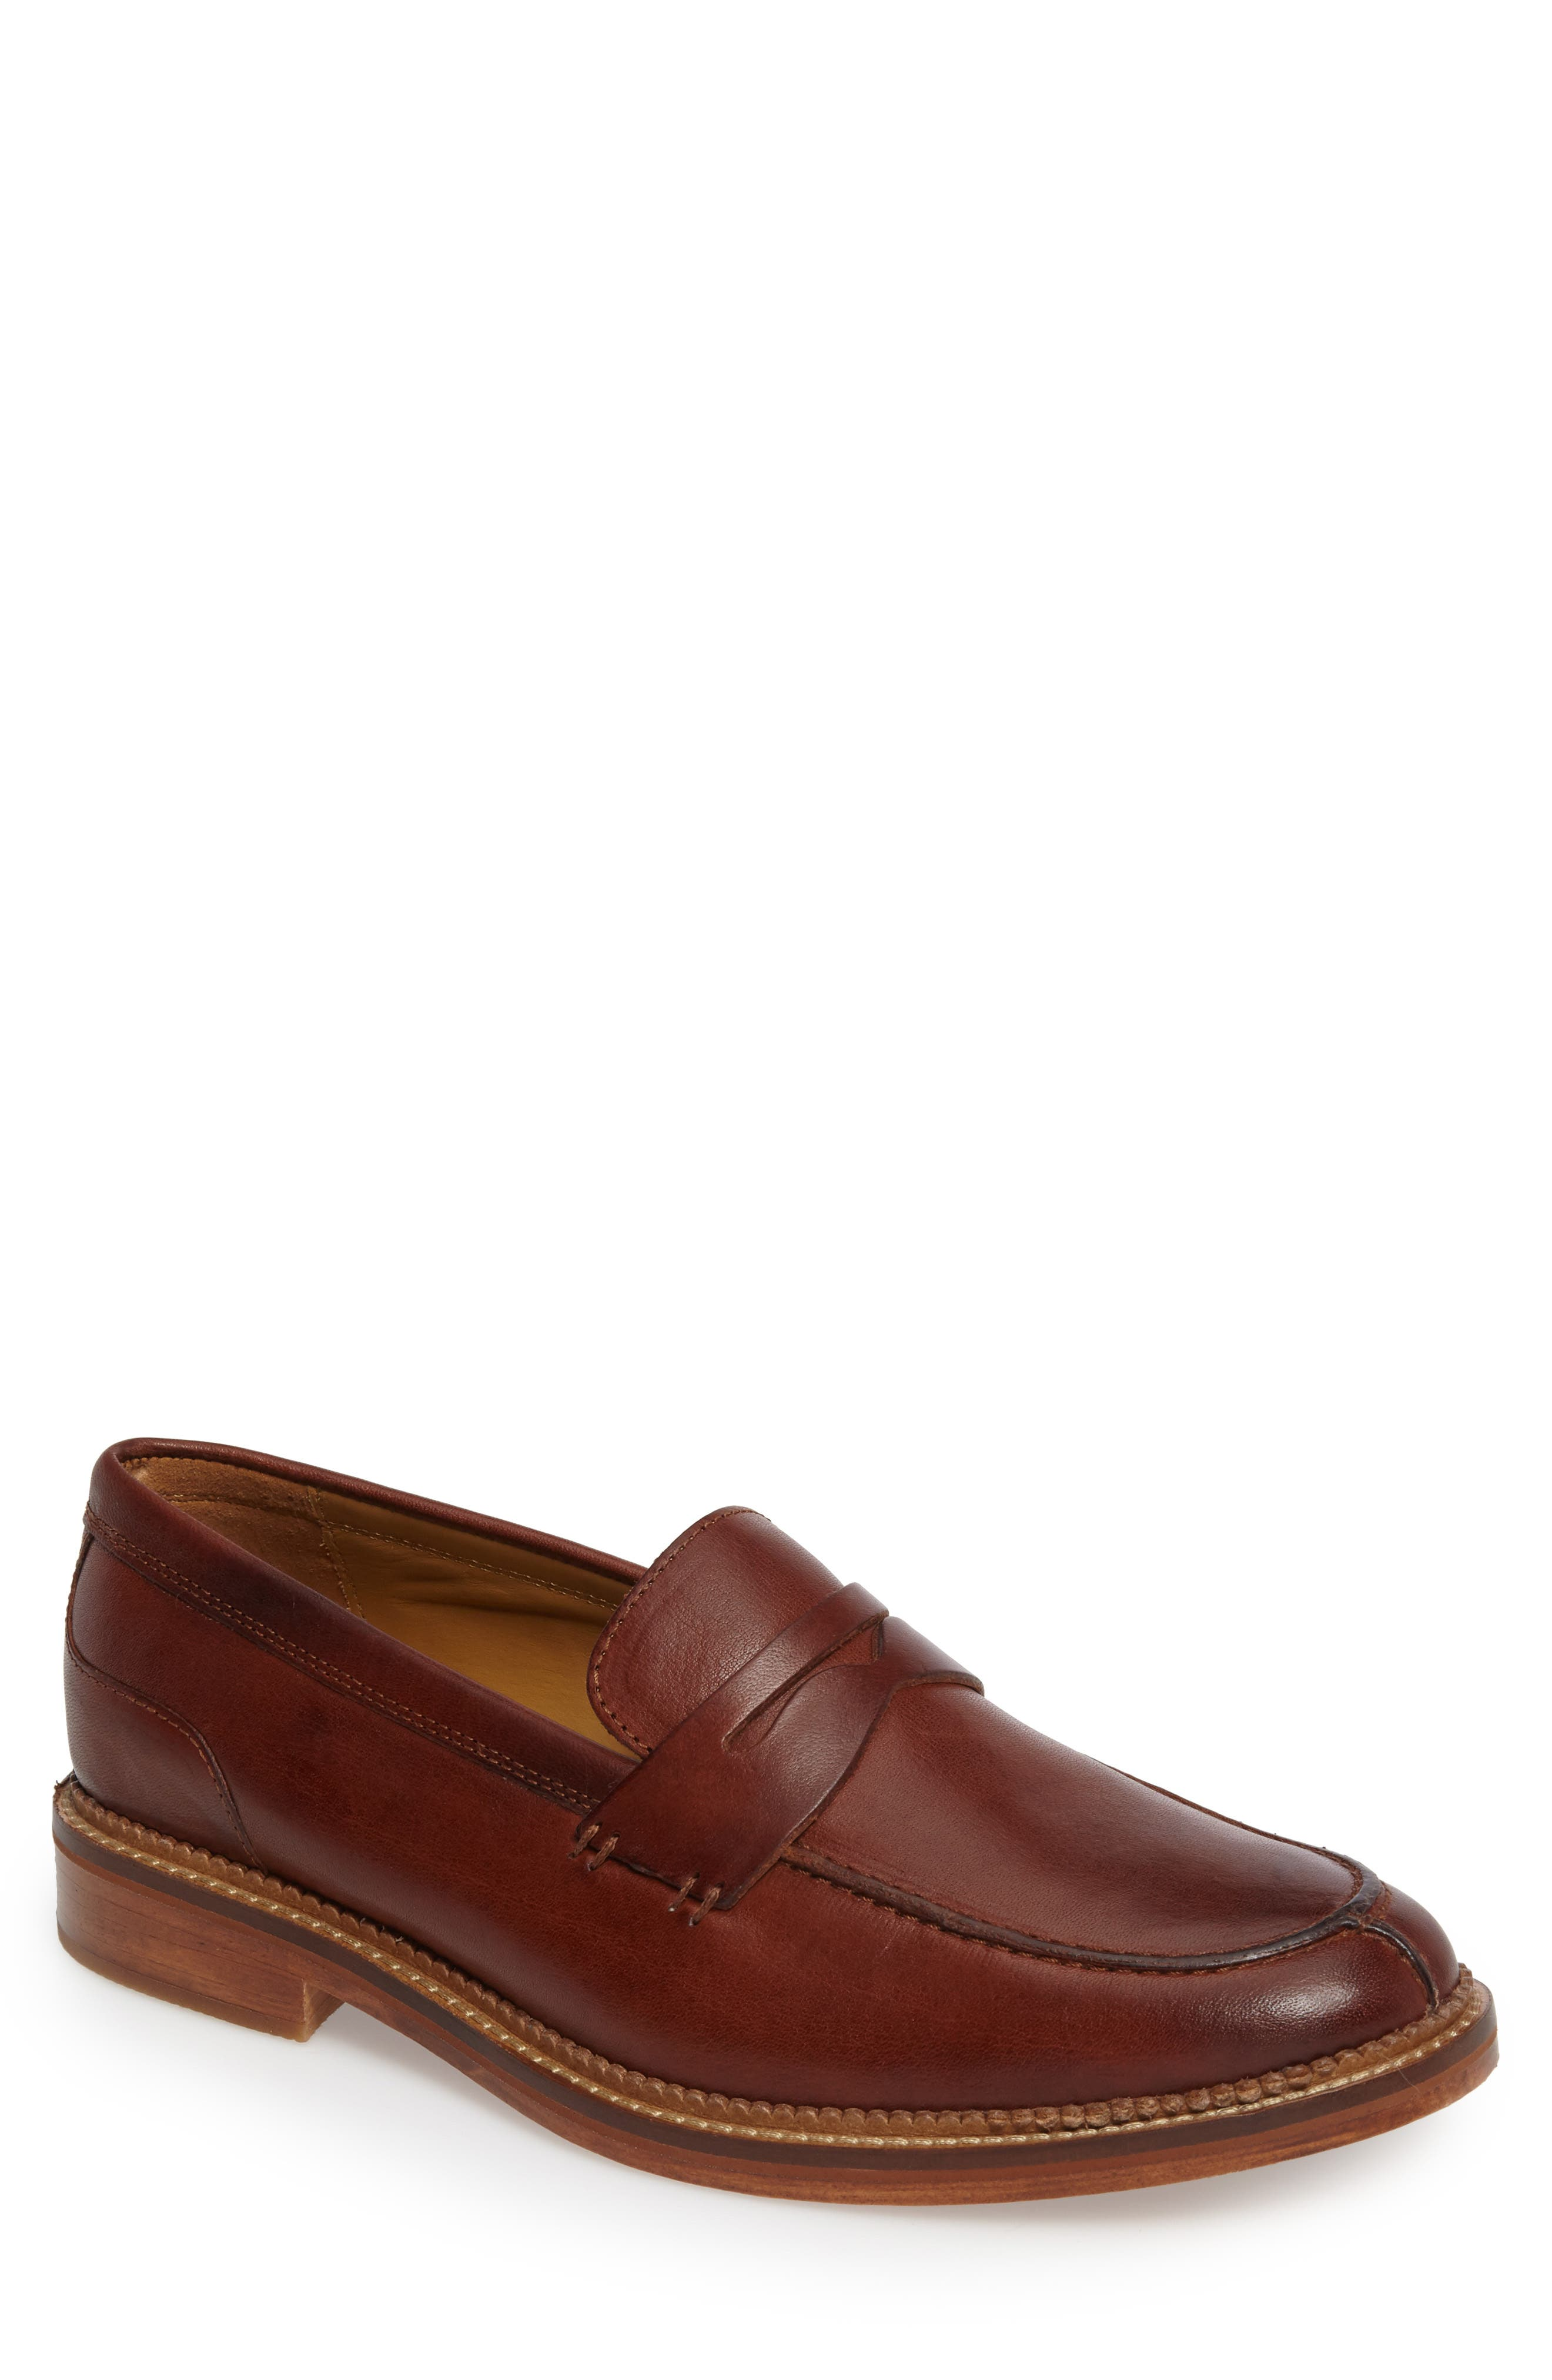 Ravenwood Penny Loafer,                             Main thumbnail 1, color,